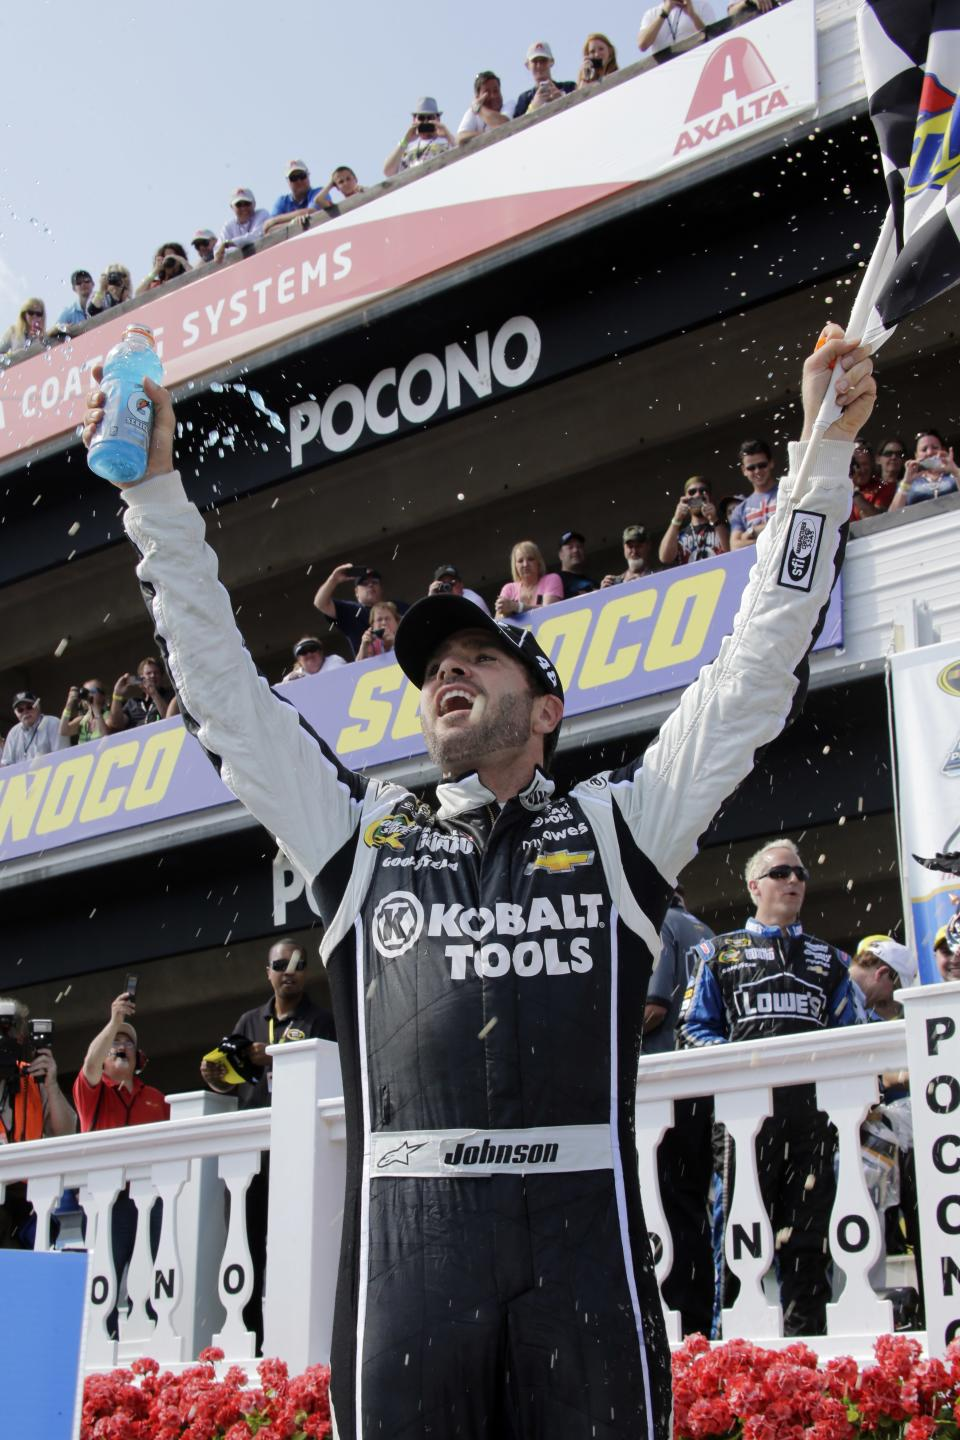 Jimmie Johnson celebrates in Victory Lane after winning the NASCAR Pocono 400 auto race on Sunday, June 9, 2013, in Long Pond, Pa. (AP Photo/Russ Hamilton Sr.)